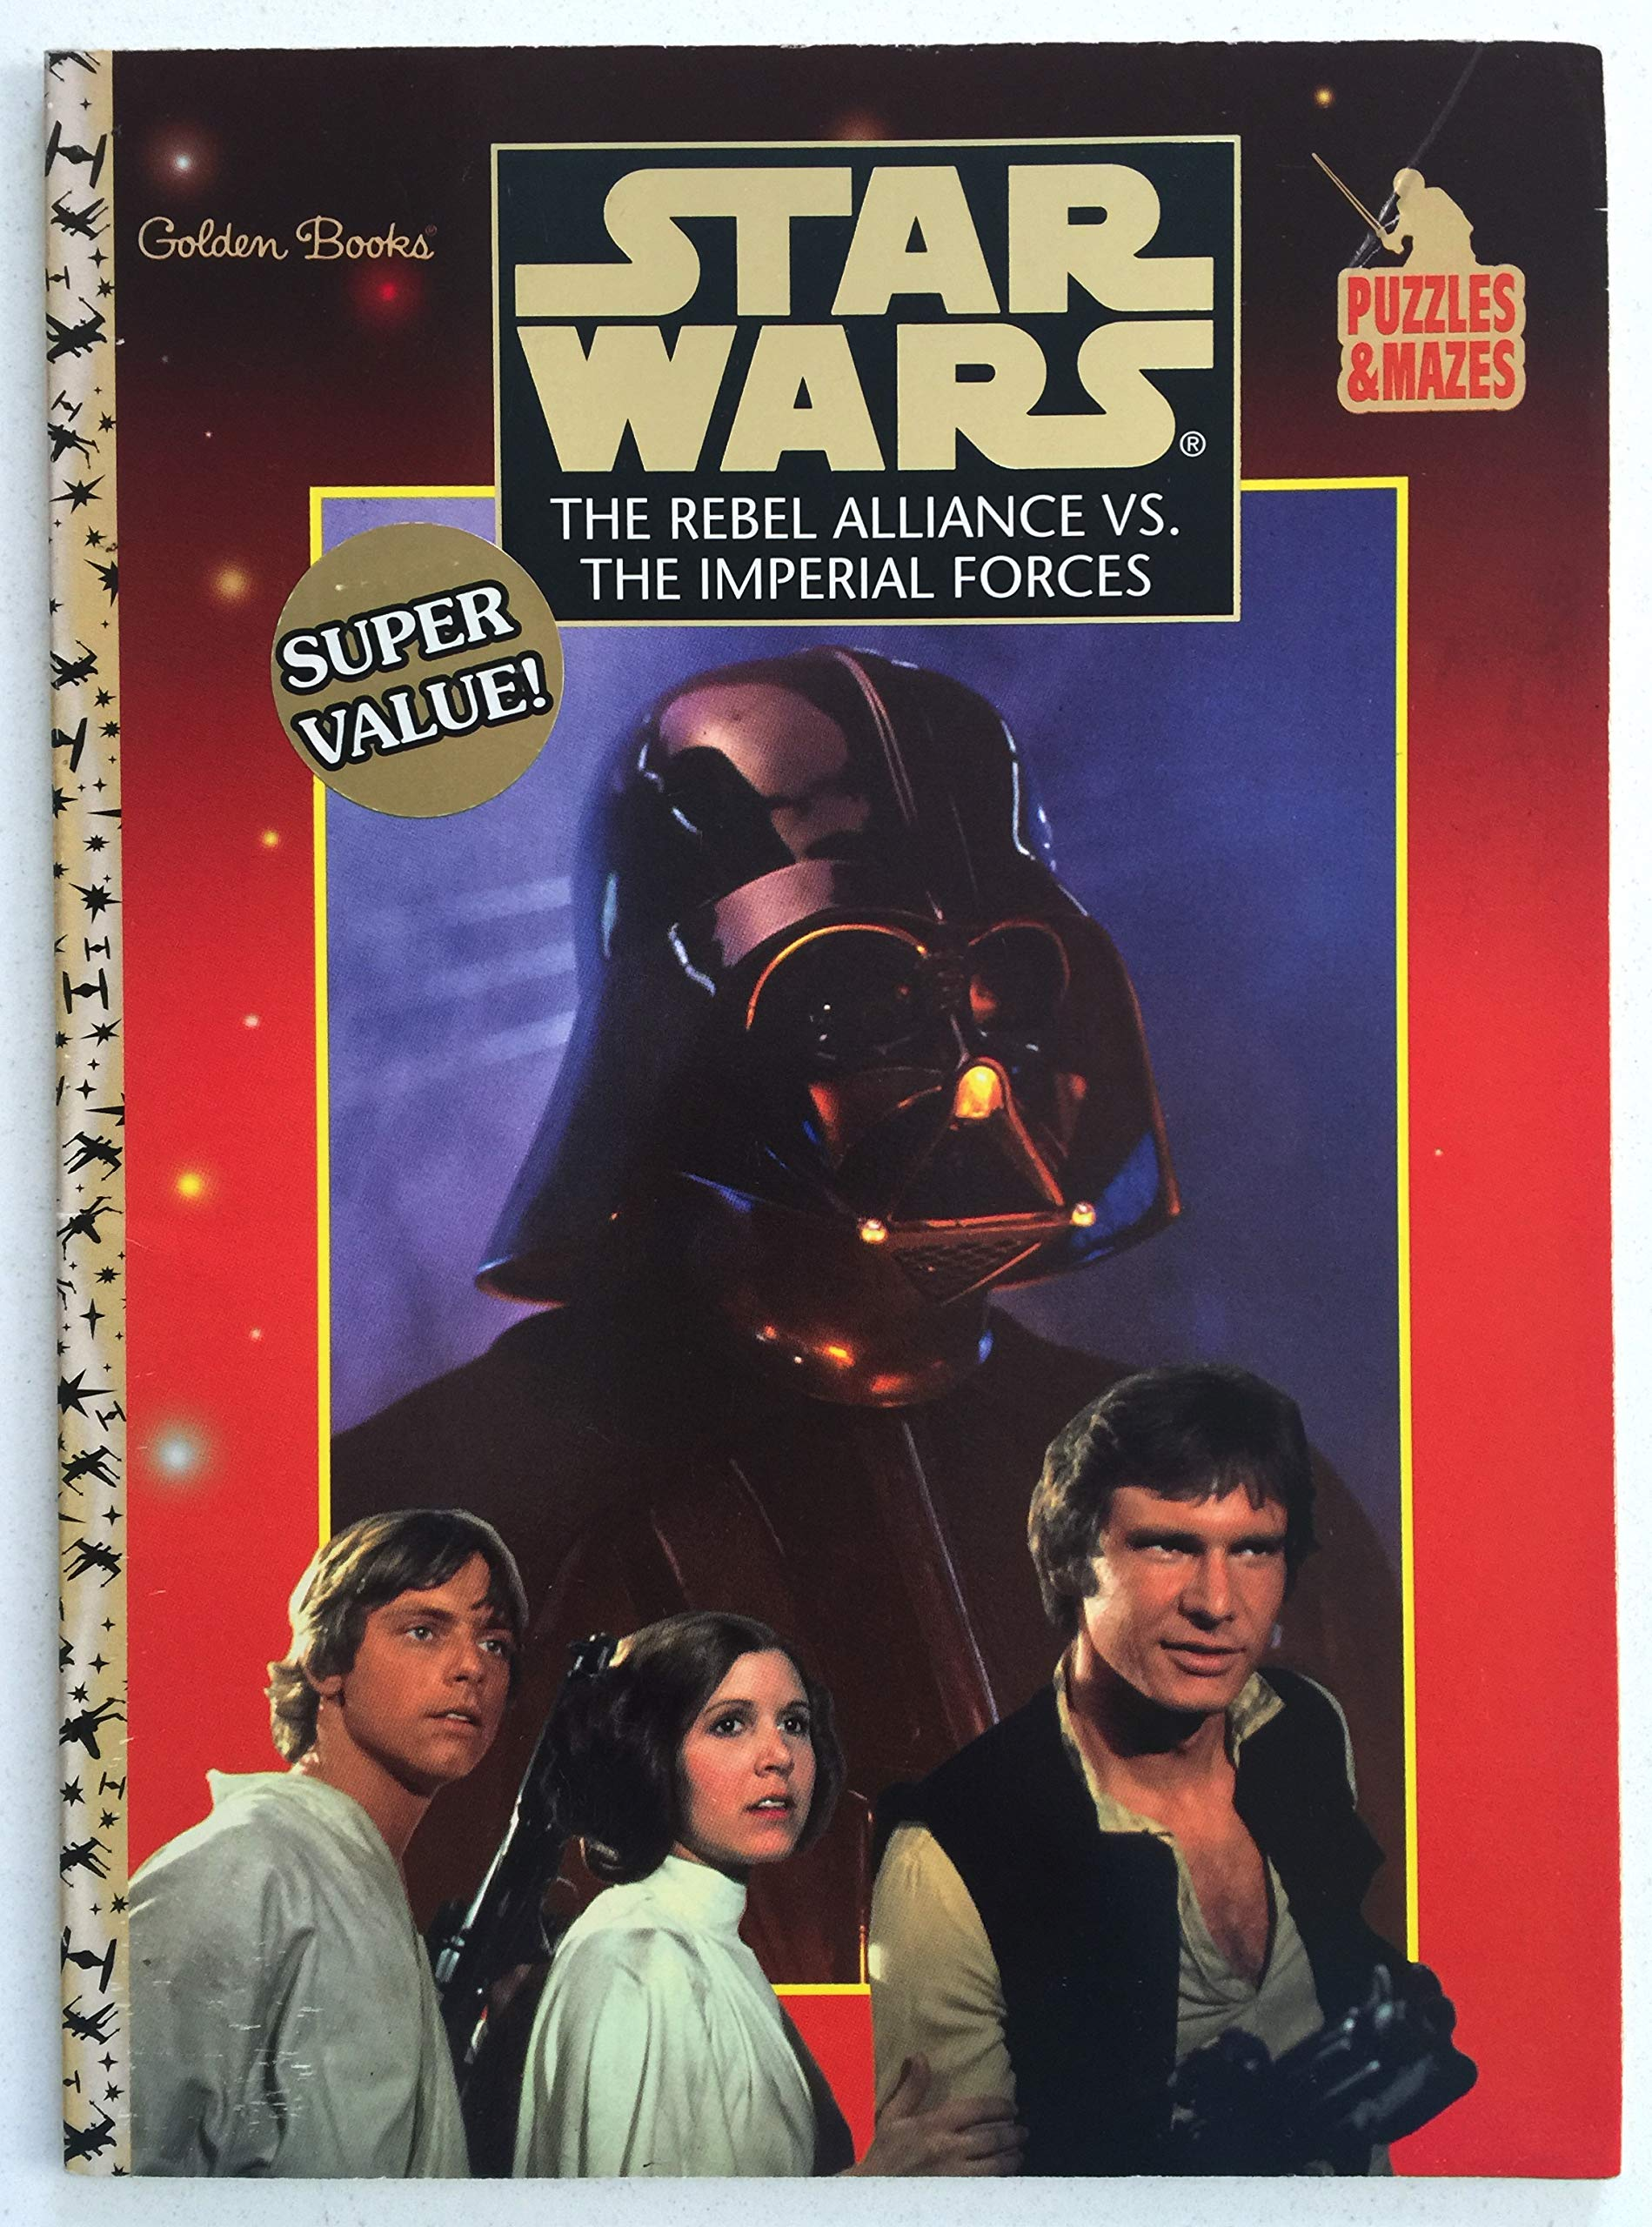 Star Wars: The Rebel Alliance vs. The Imperial Forces